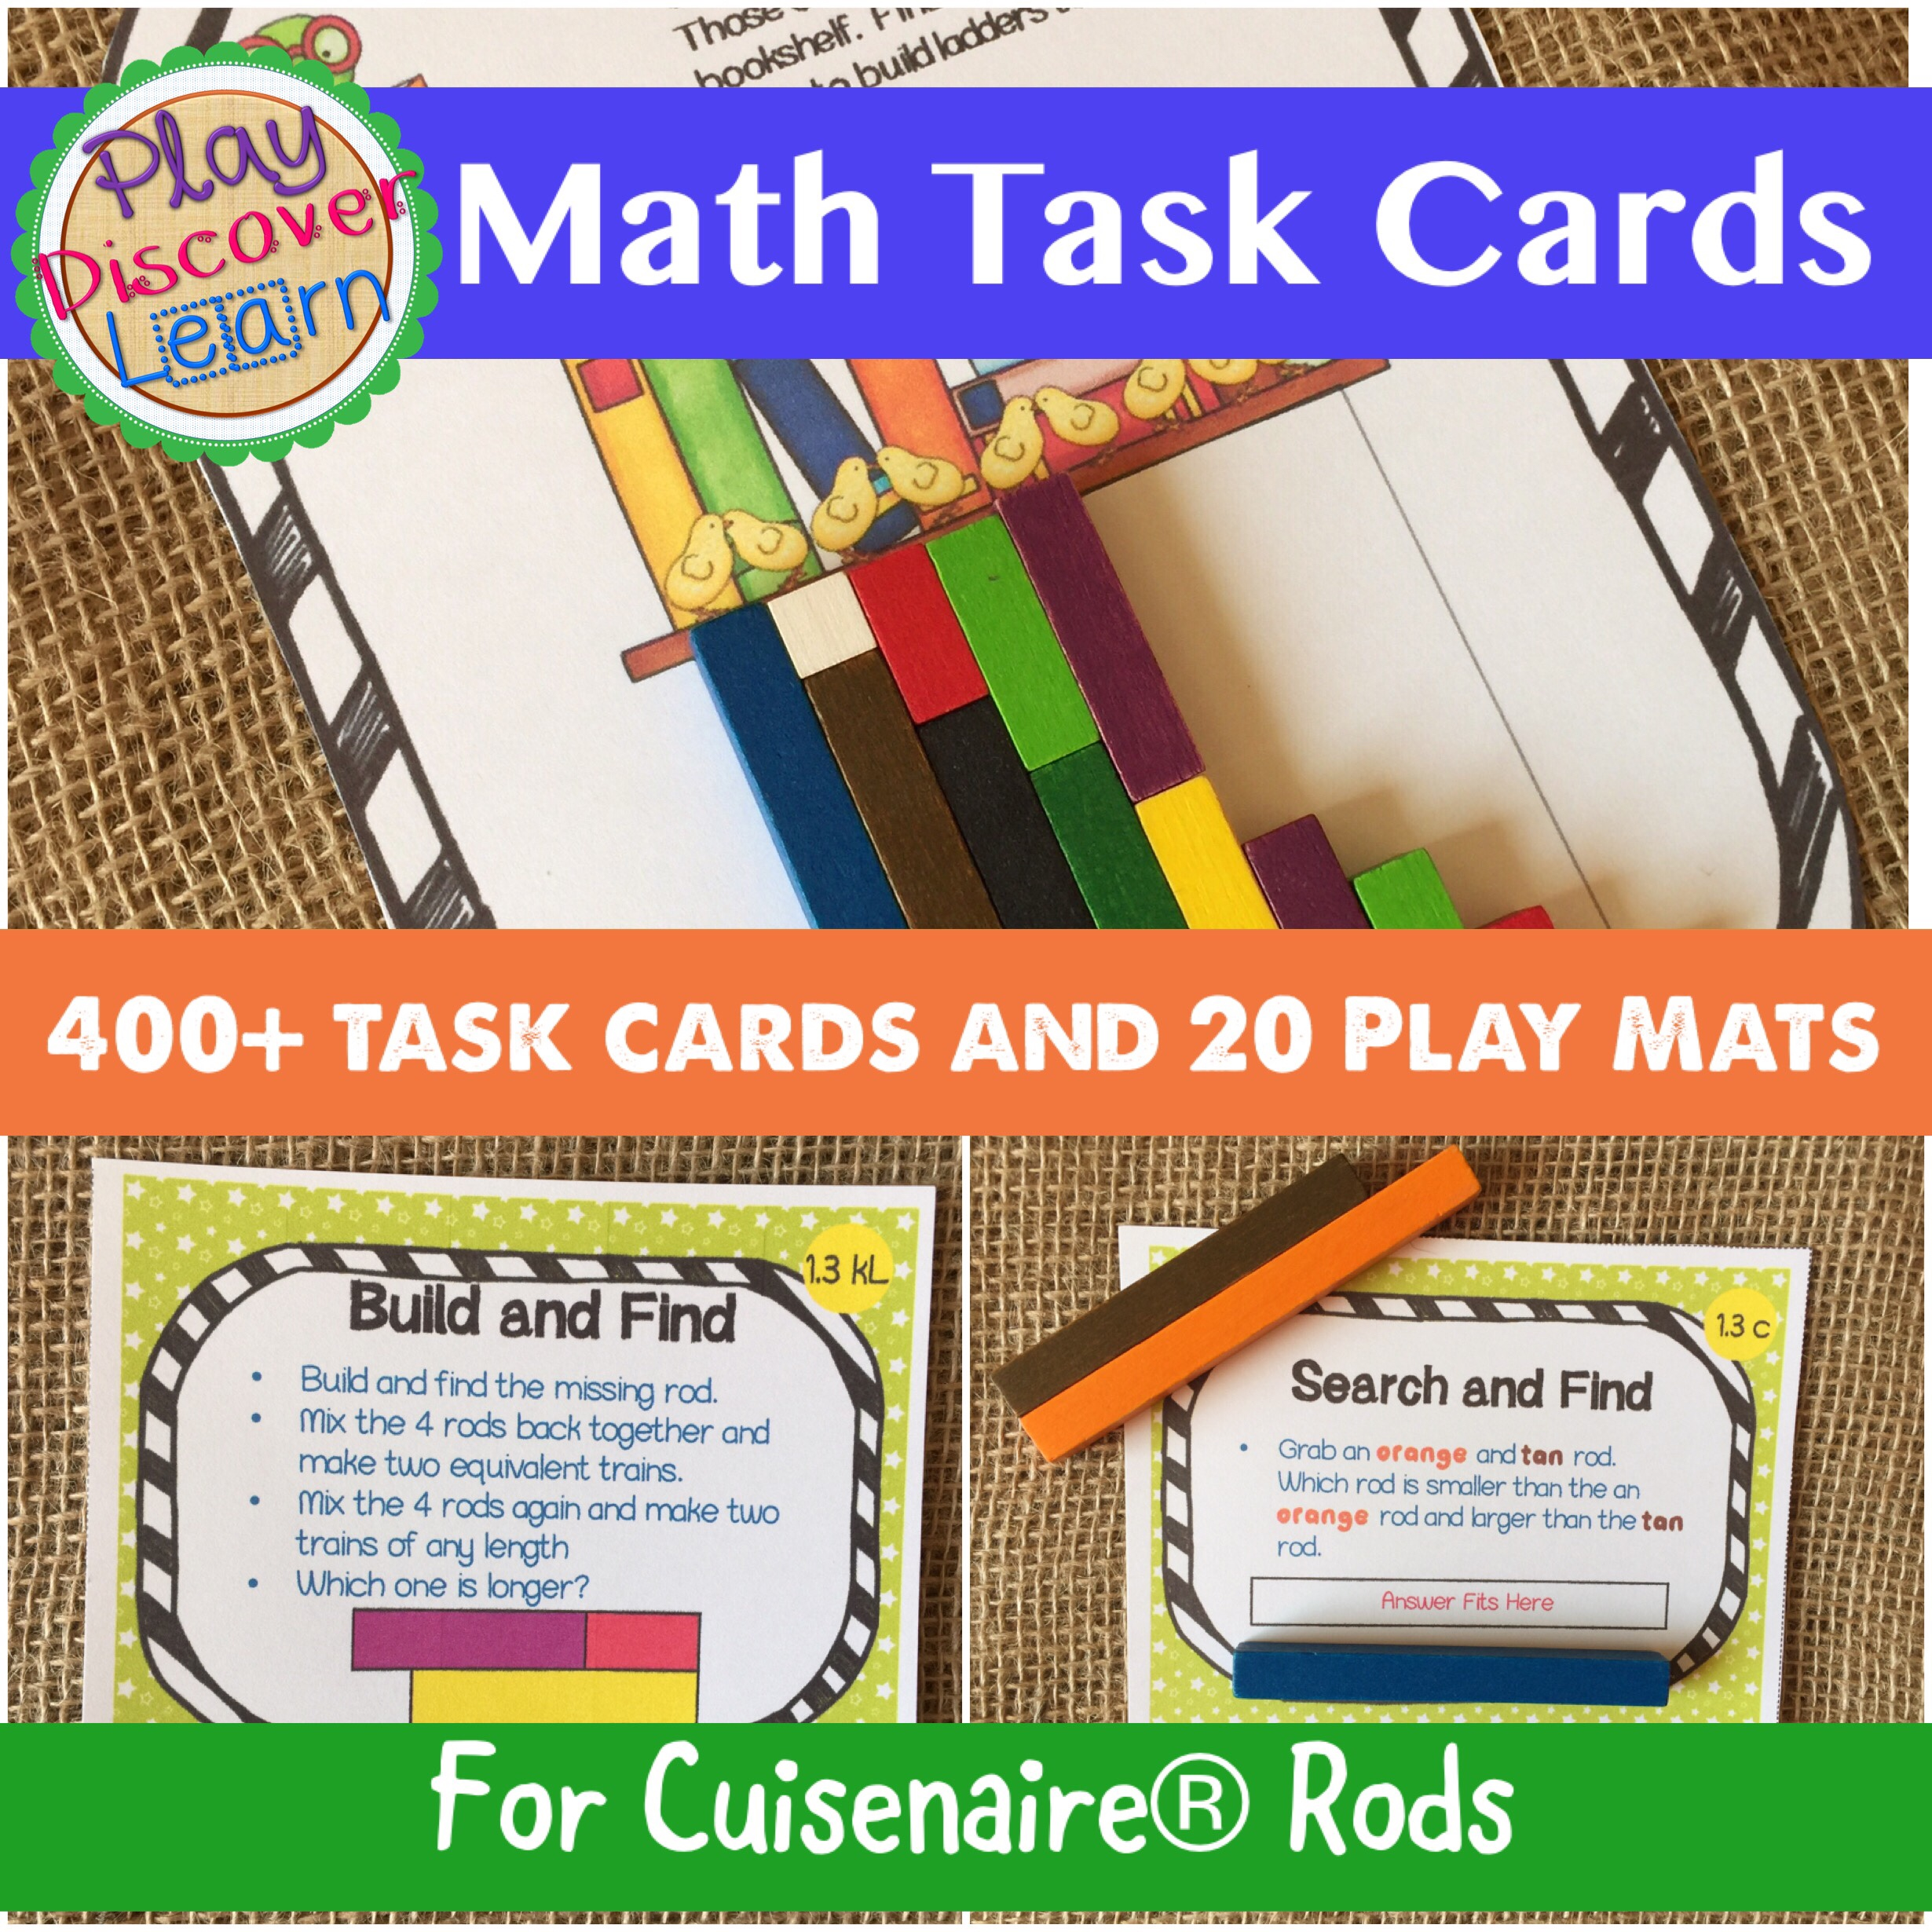 Math task cards for cuisenaire rods